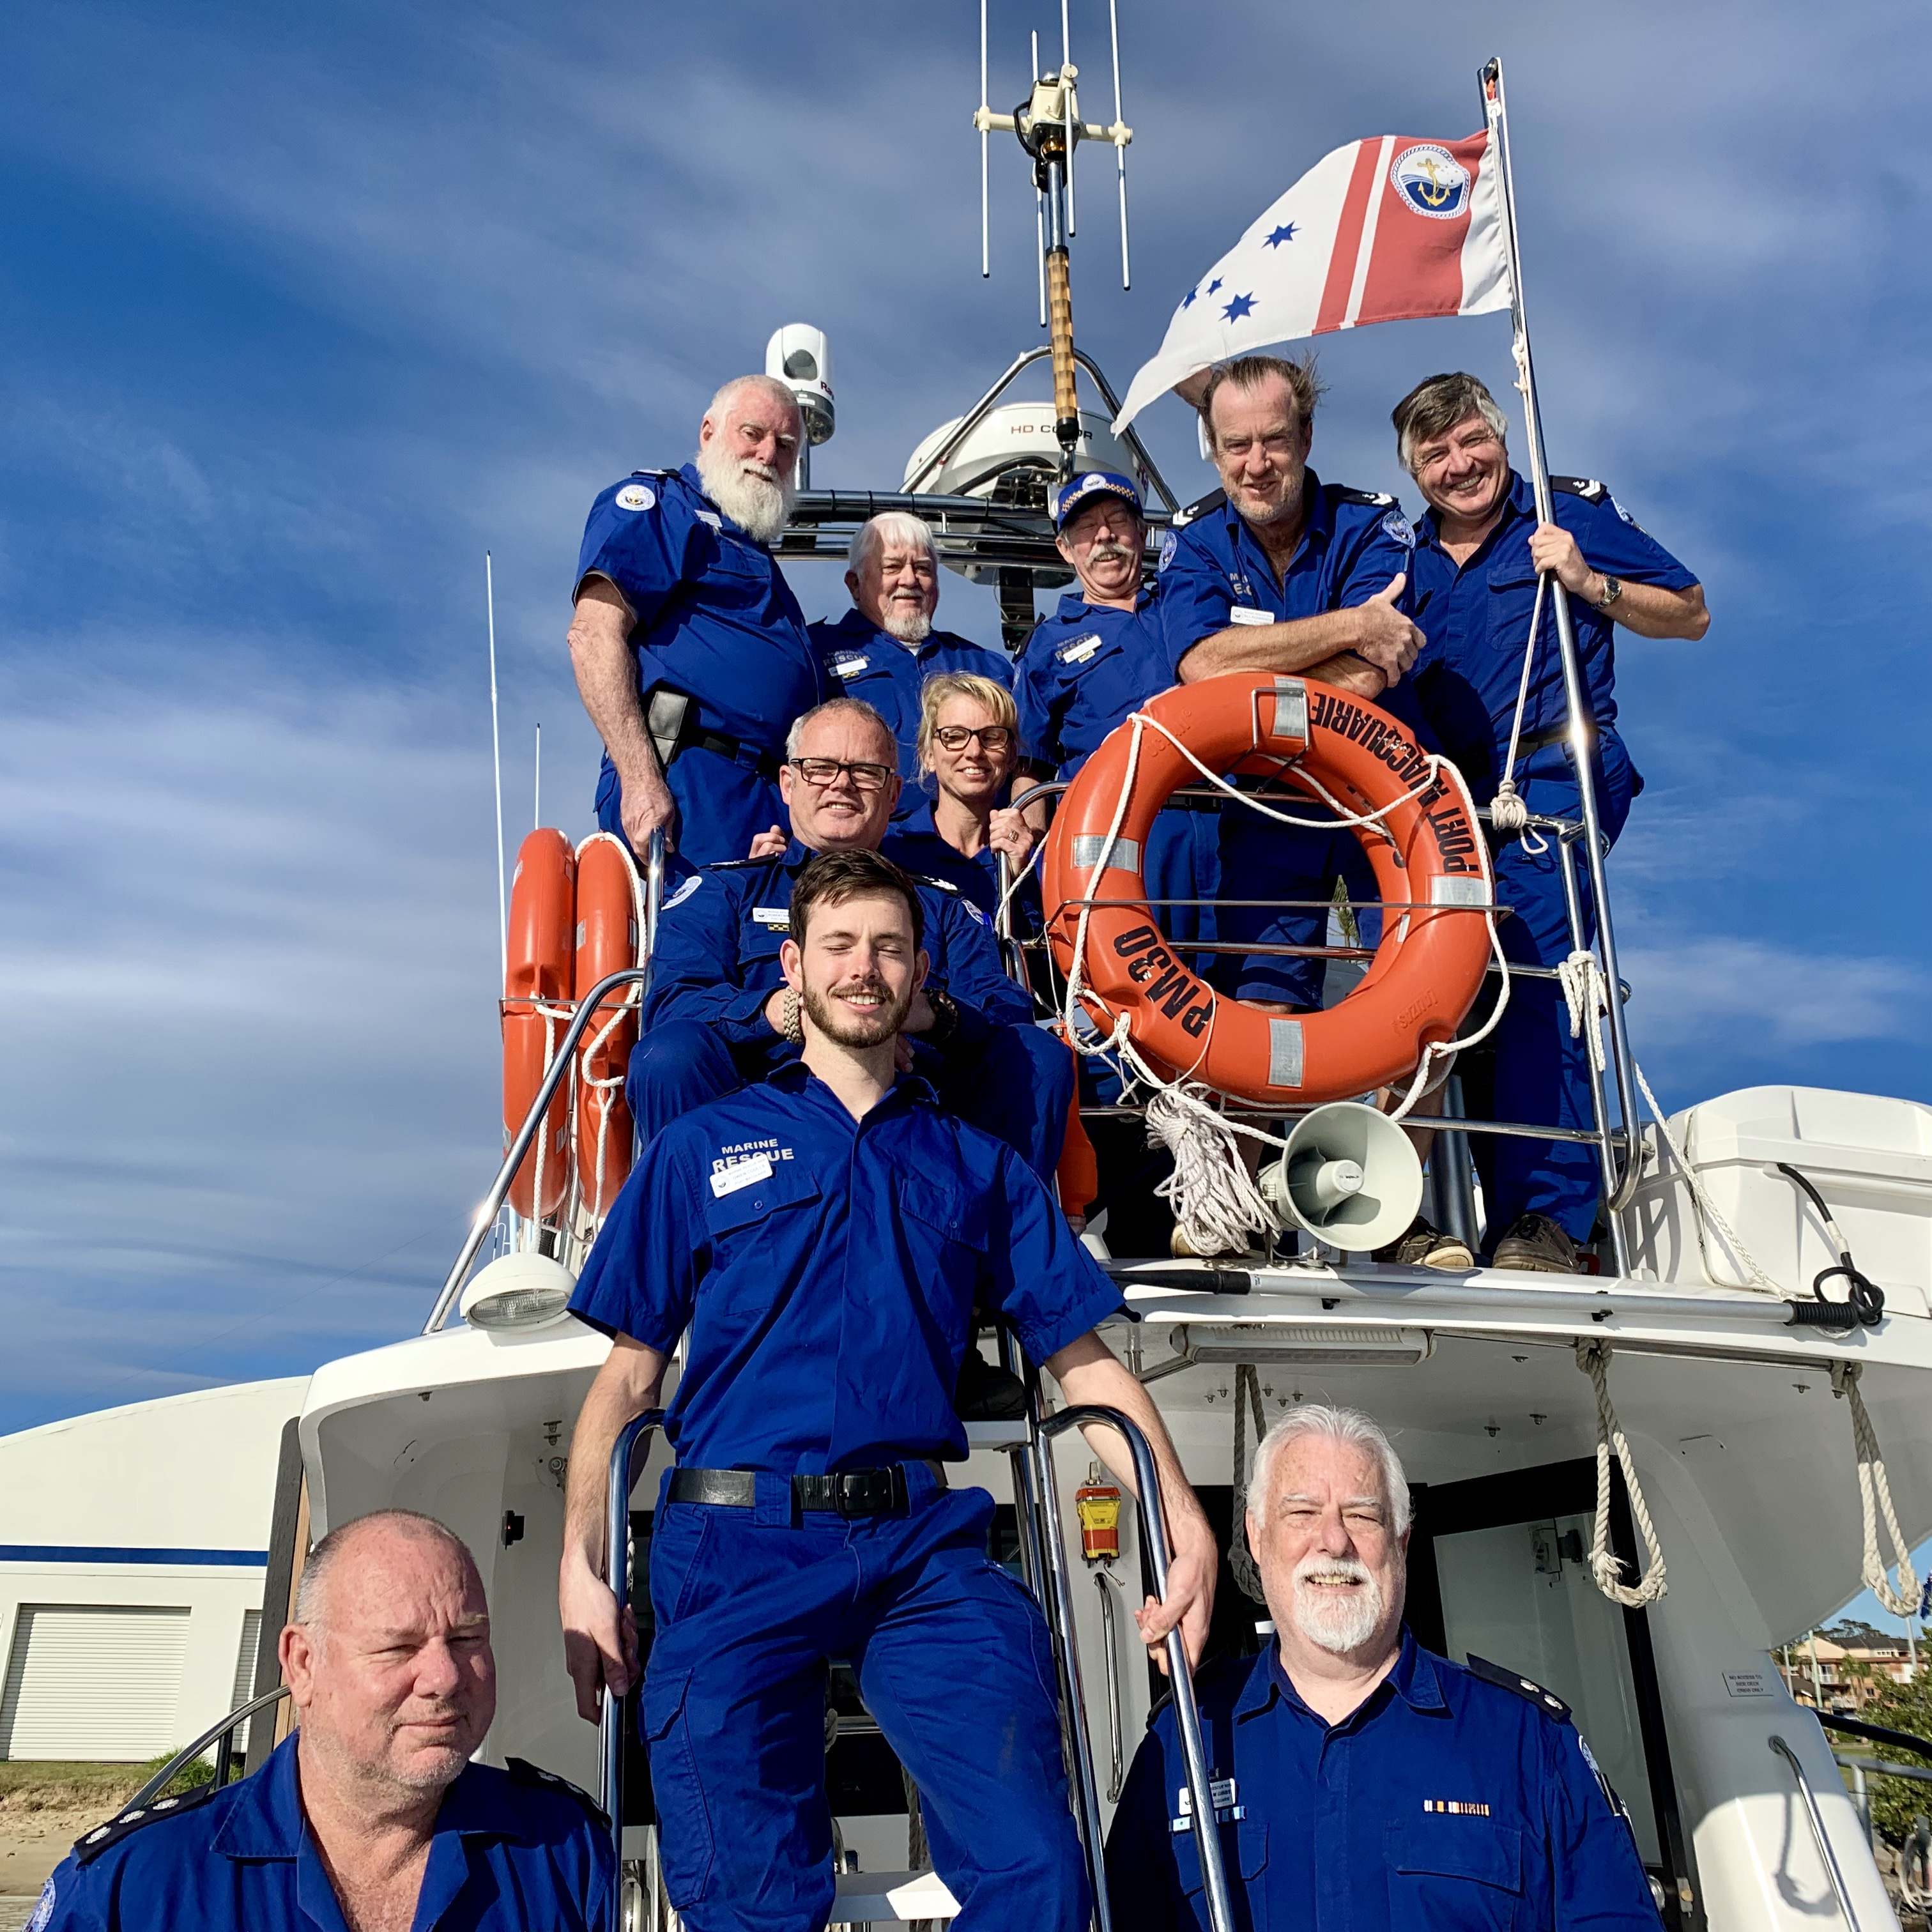 IMRF Awards 2019 Finalist - Marine Rescue Port Macquarie, Sydney, Australia